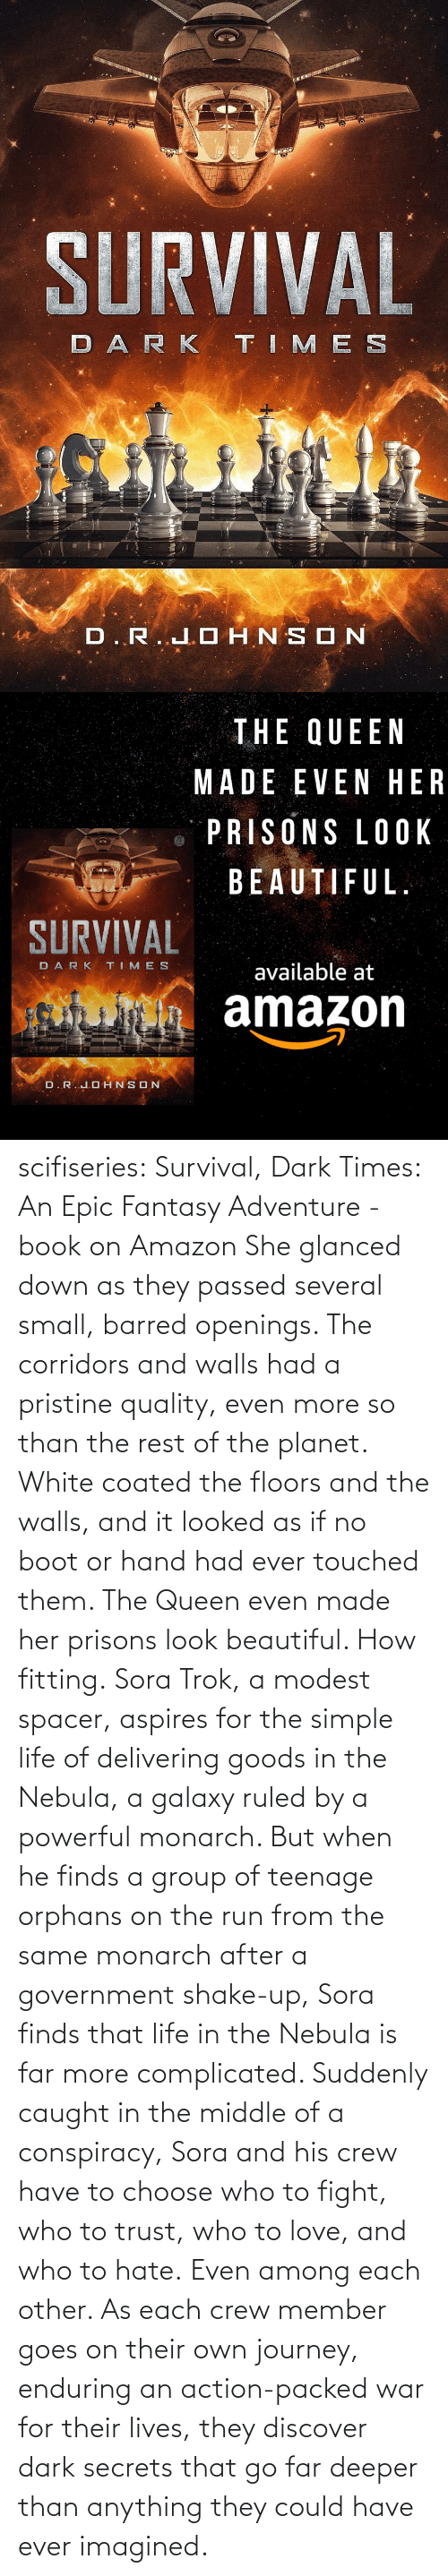 group: scifiseries: Survival, Dark Times: An Epic Fantasy Adventure - book on Amazon  She glanced down as they  passed several small, barred openings. The corridors and walls had a  pristine quality, even more so than the rest of the planet. White coated  the floors and the walls, and it looked as if no boot or hand had ever  touched them.  The Queen even made her prisons look beautiful.  How fitting. Sora  Trok, a modest spacer, aspires for the simple life of delivering goods  in the Nebula, a galaxy ruled by a powerful monarch. But when he finds a  group of teenage orphans on the run from the same monarch after a  government shake-up, Sora finds that life in the Nebula is far more complicated.  Suddenly  caught in the middle of a conspiracy, Sora and his crew have to choose  who to fight, who to trust, who to love, and who to hate. Even among each other.  As  each crew member goes on their own journey, enduring an action-packed  war for their lives, they discover dark secrets that go far deeper than  anything they could have ever imagined.